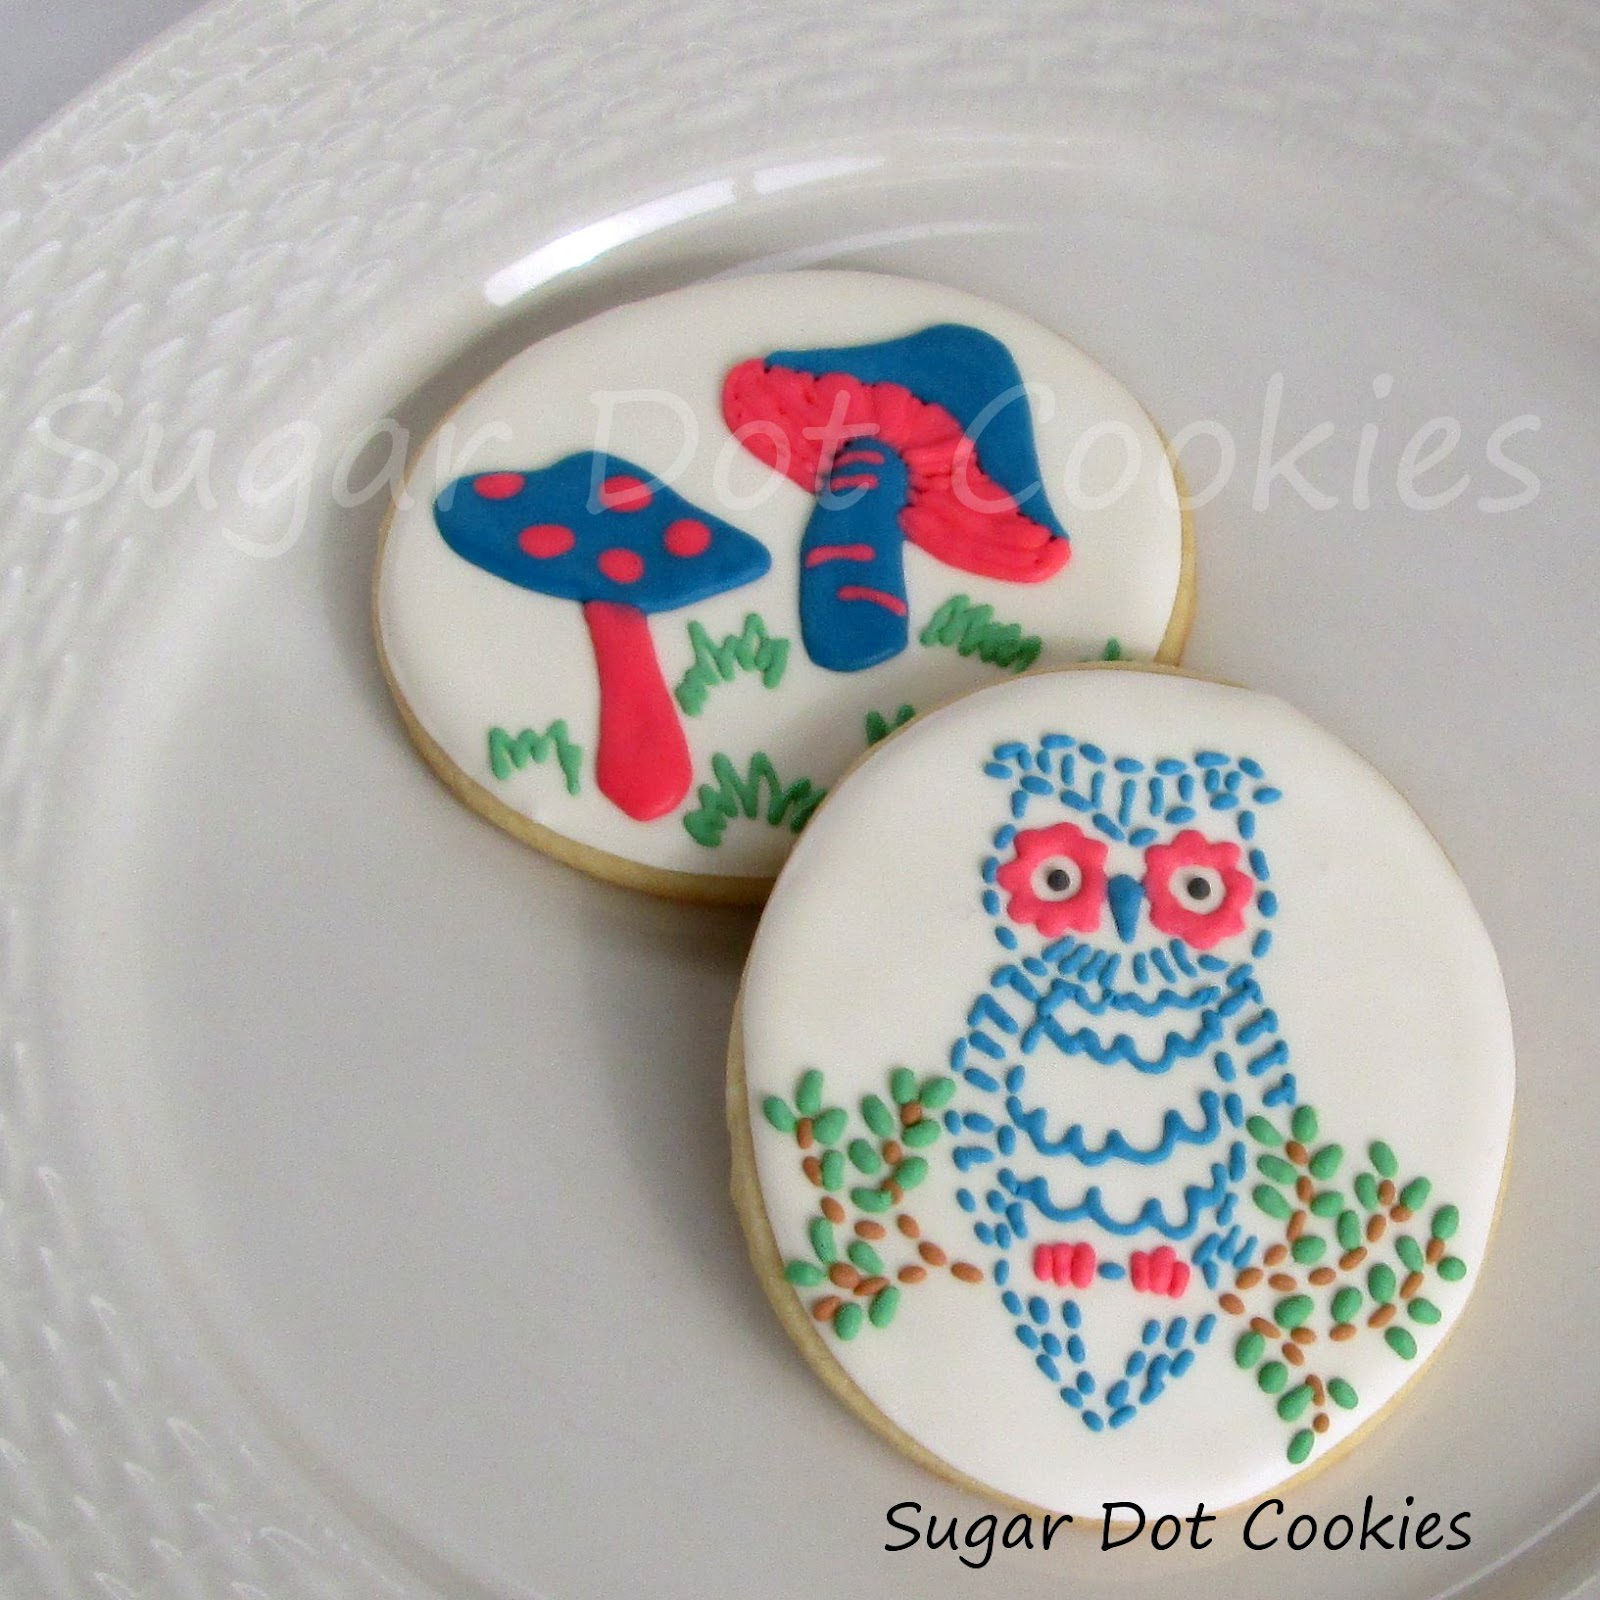 Owl Decorated Cookies Sugar Dot Cookies Embroidery Pattern Sugar Cookies Roses